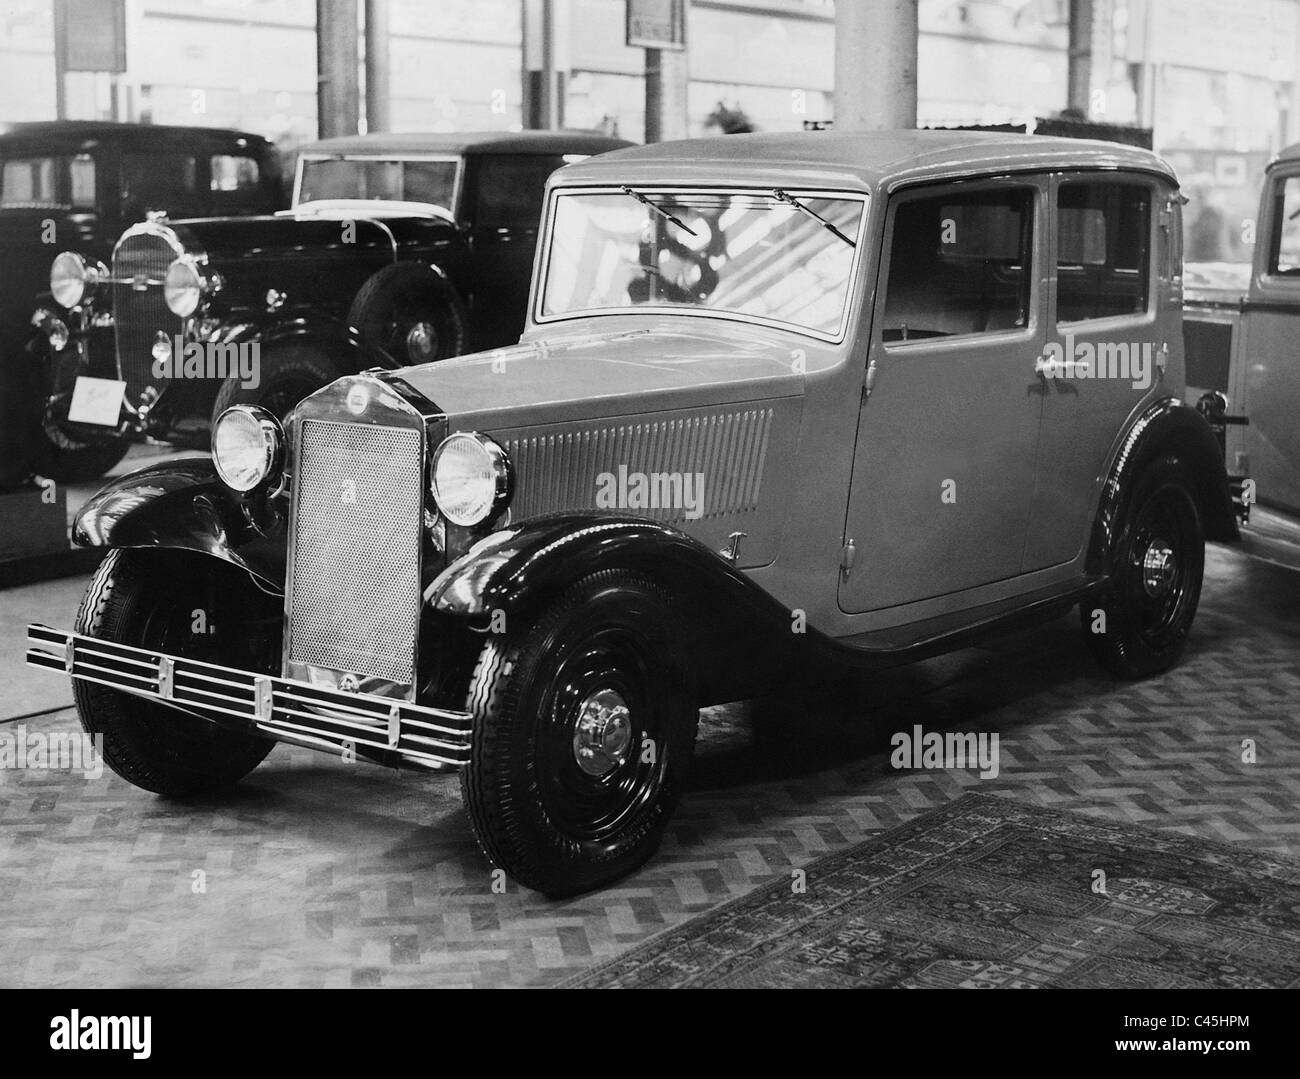 Model of a Lancia at the Motor Show in the Olympia Exhibition Halls in London, 1932 - Stock Image